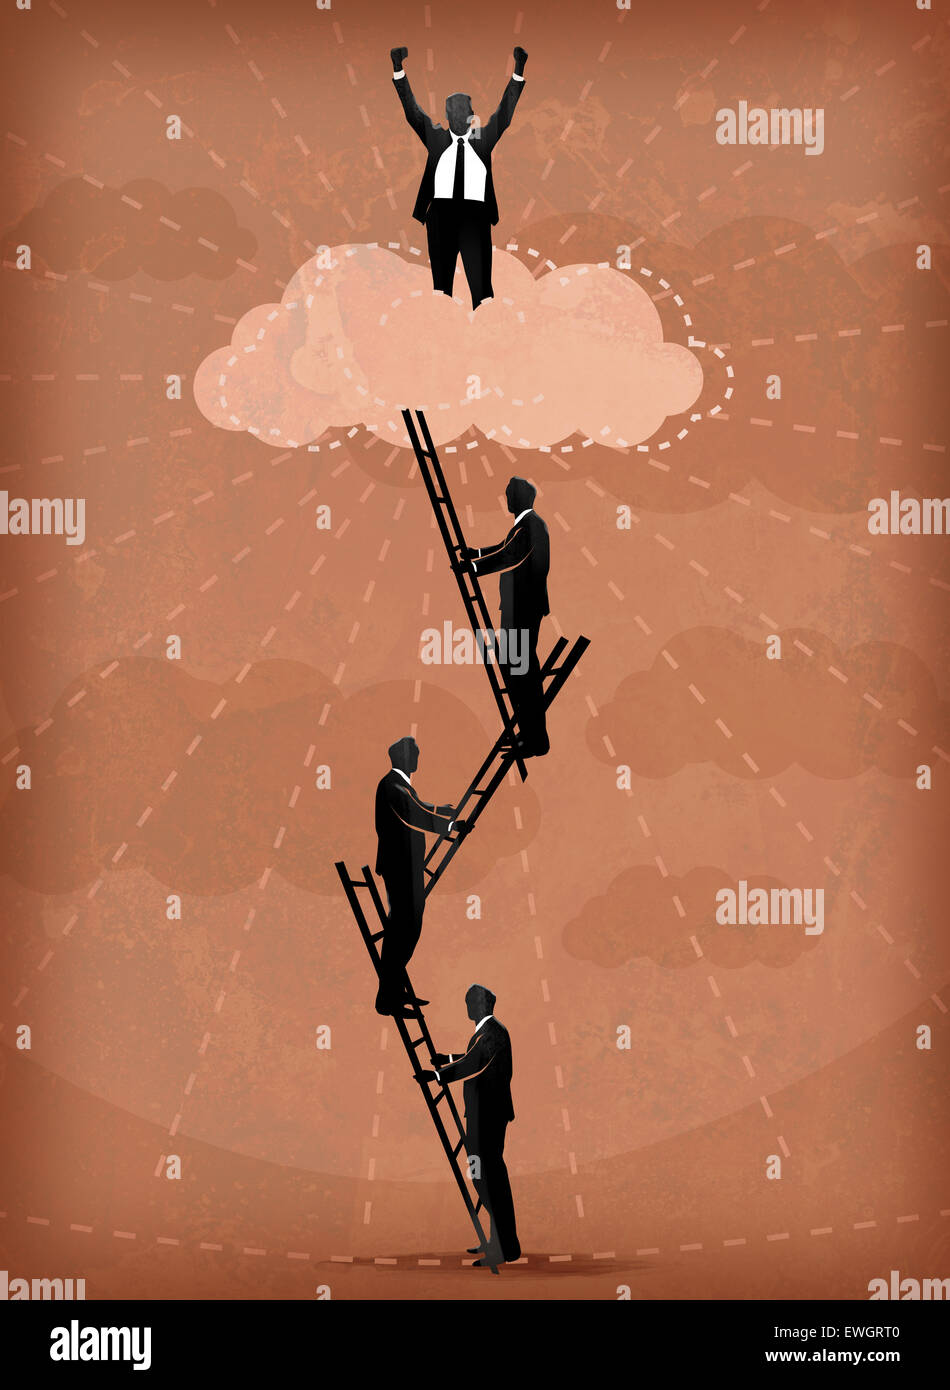 Illustration image of business people climbing ladders - Stock Image